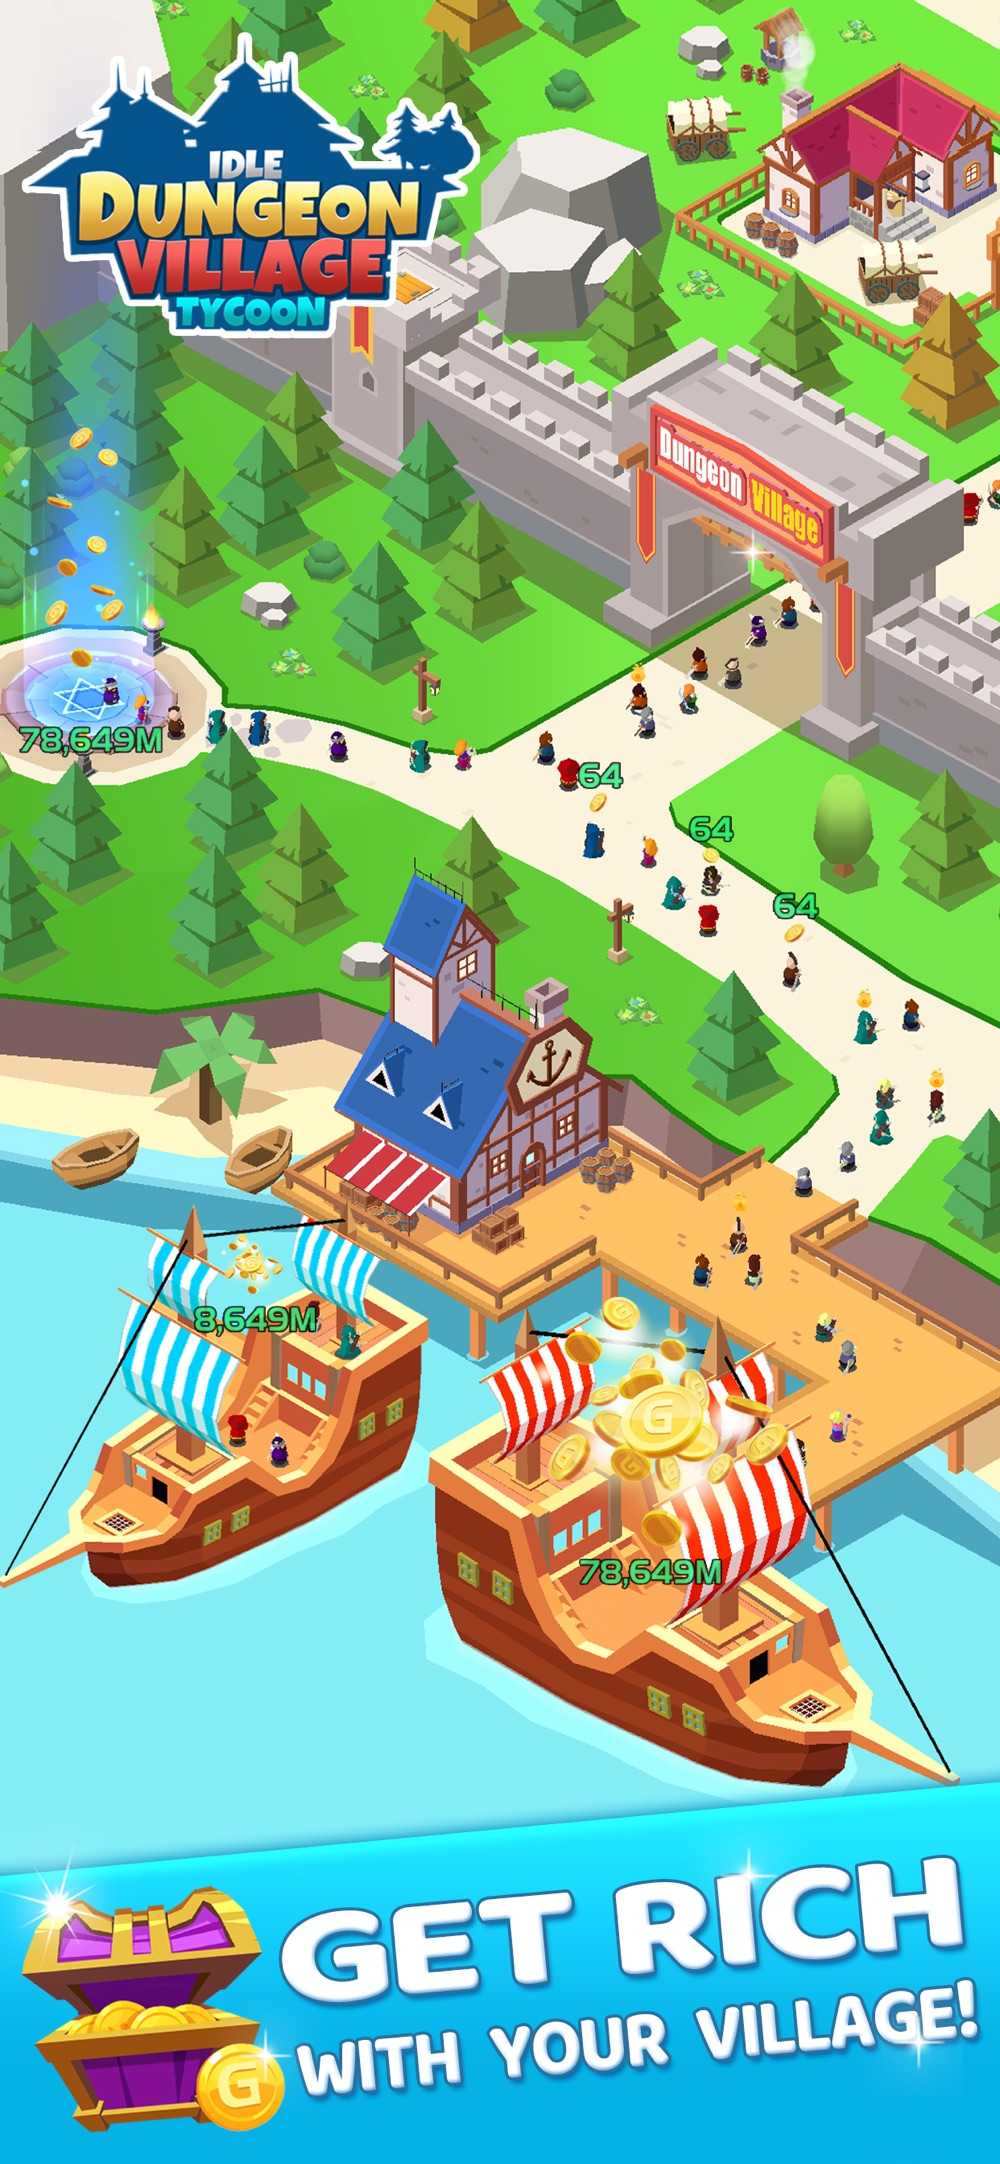 Idle Dungeon Village Tycoon hack tool